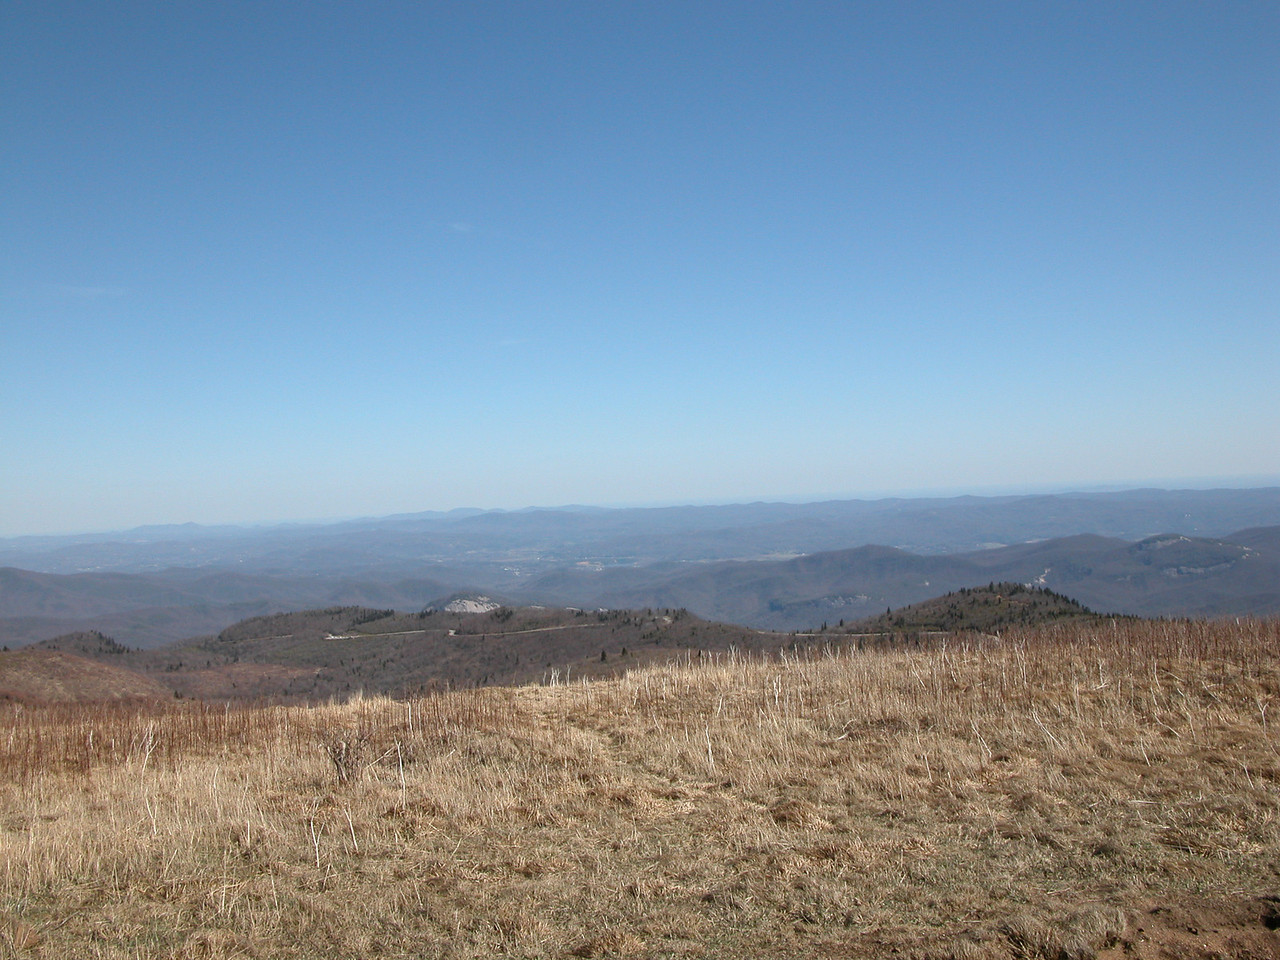 Looking Glass Rock and the Blue Ridge Parkway from the Art Loeb Trail near the summit of Black Balsam Knob.